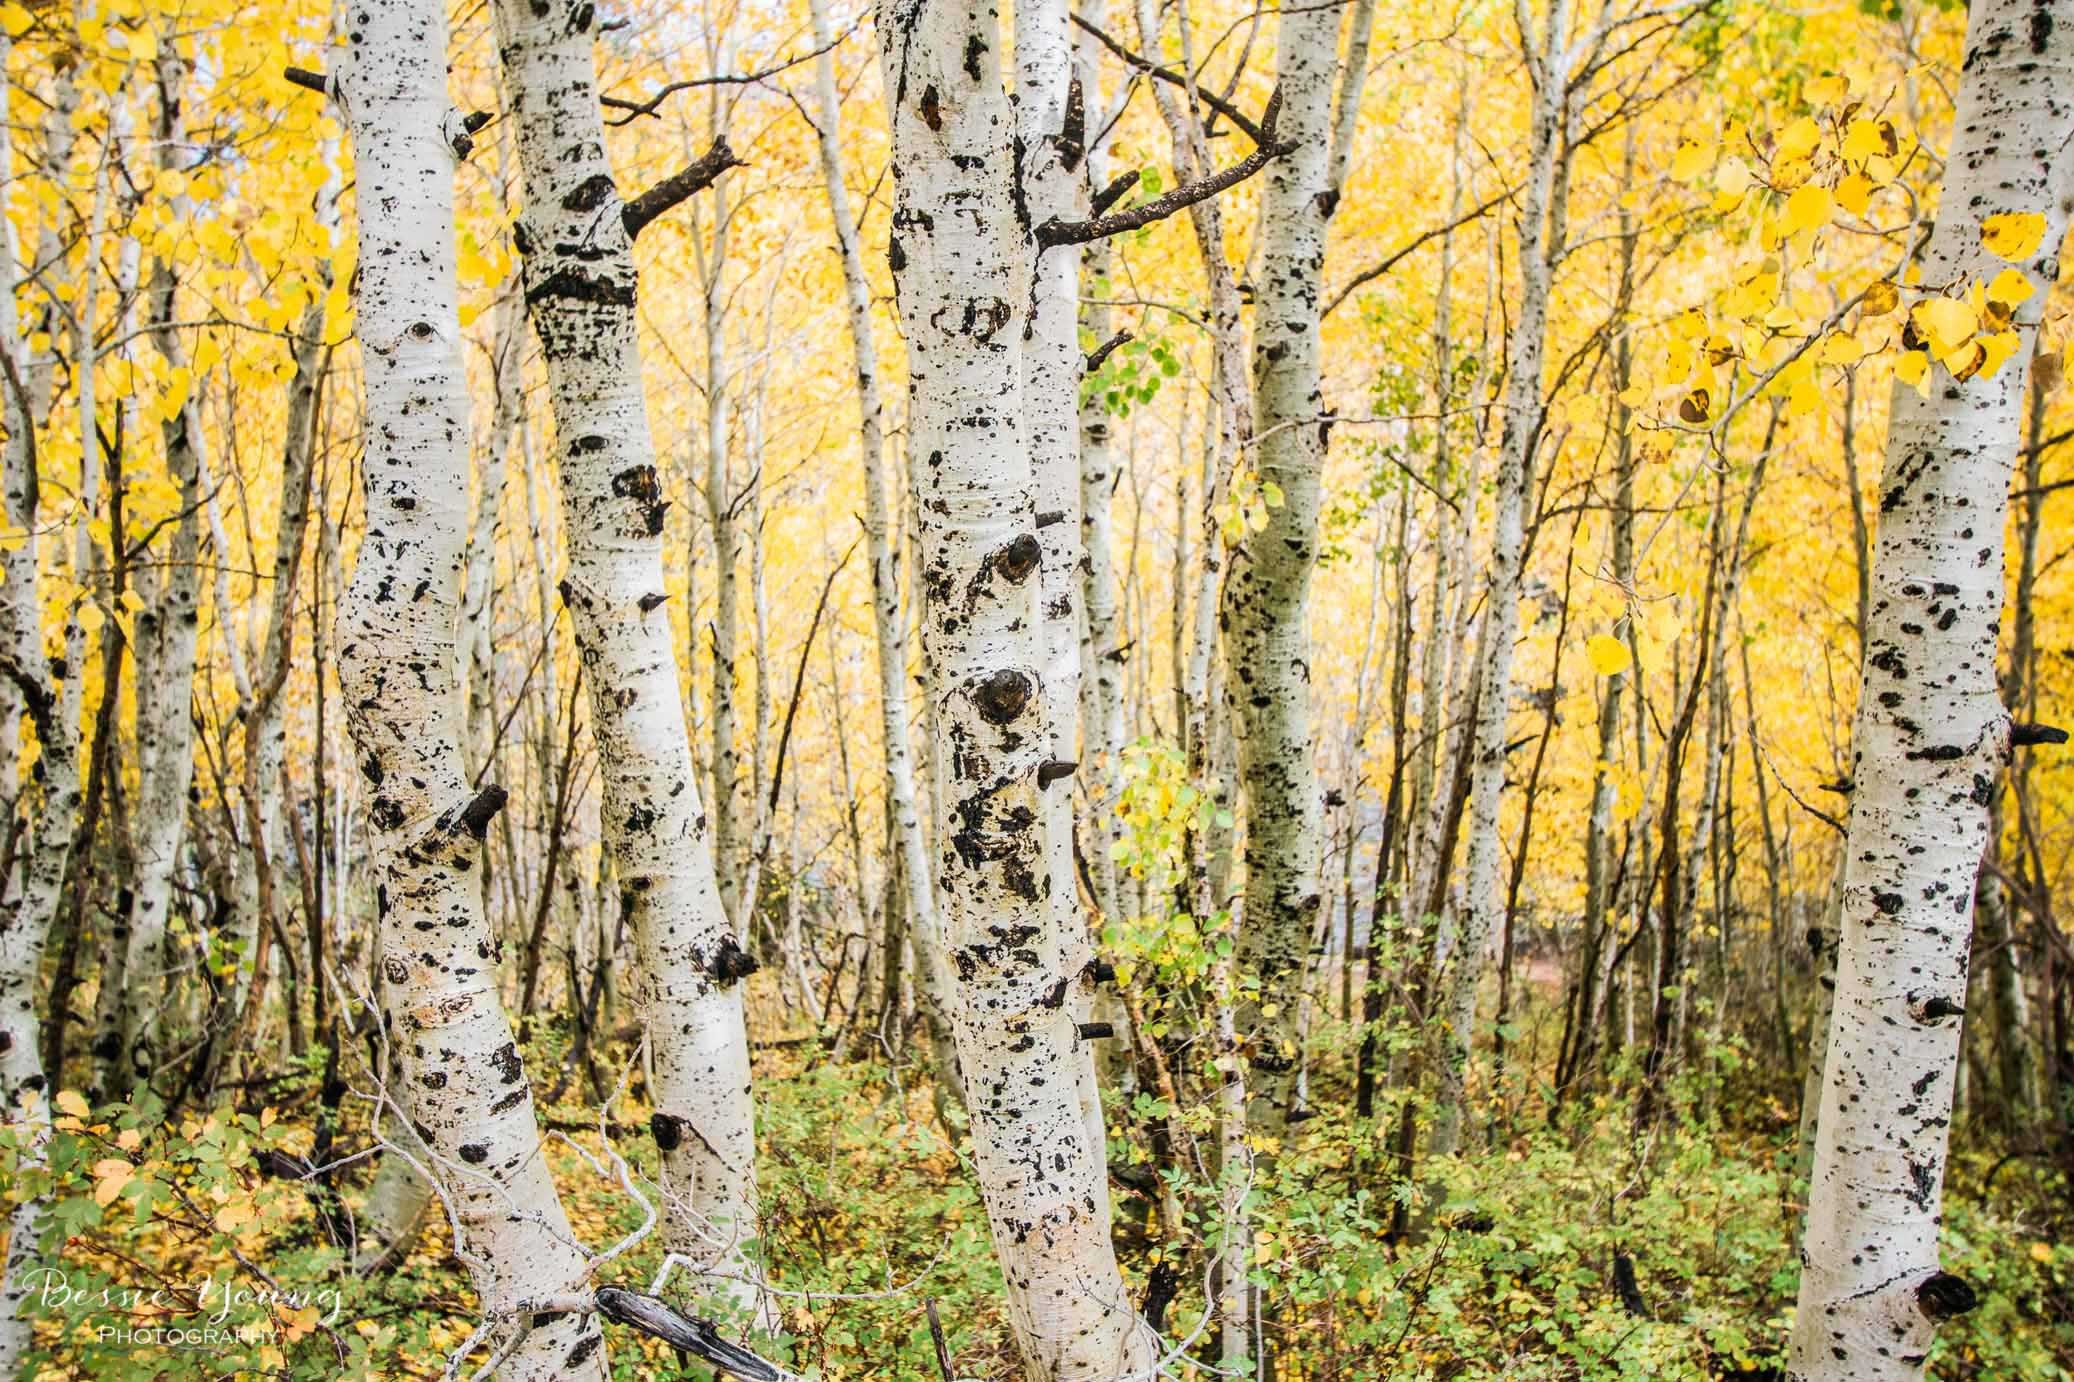 Aspen Photograph by Bessie young